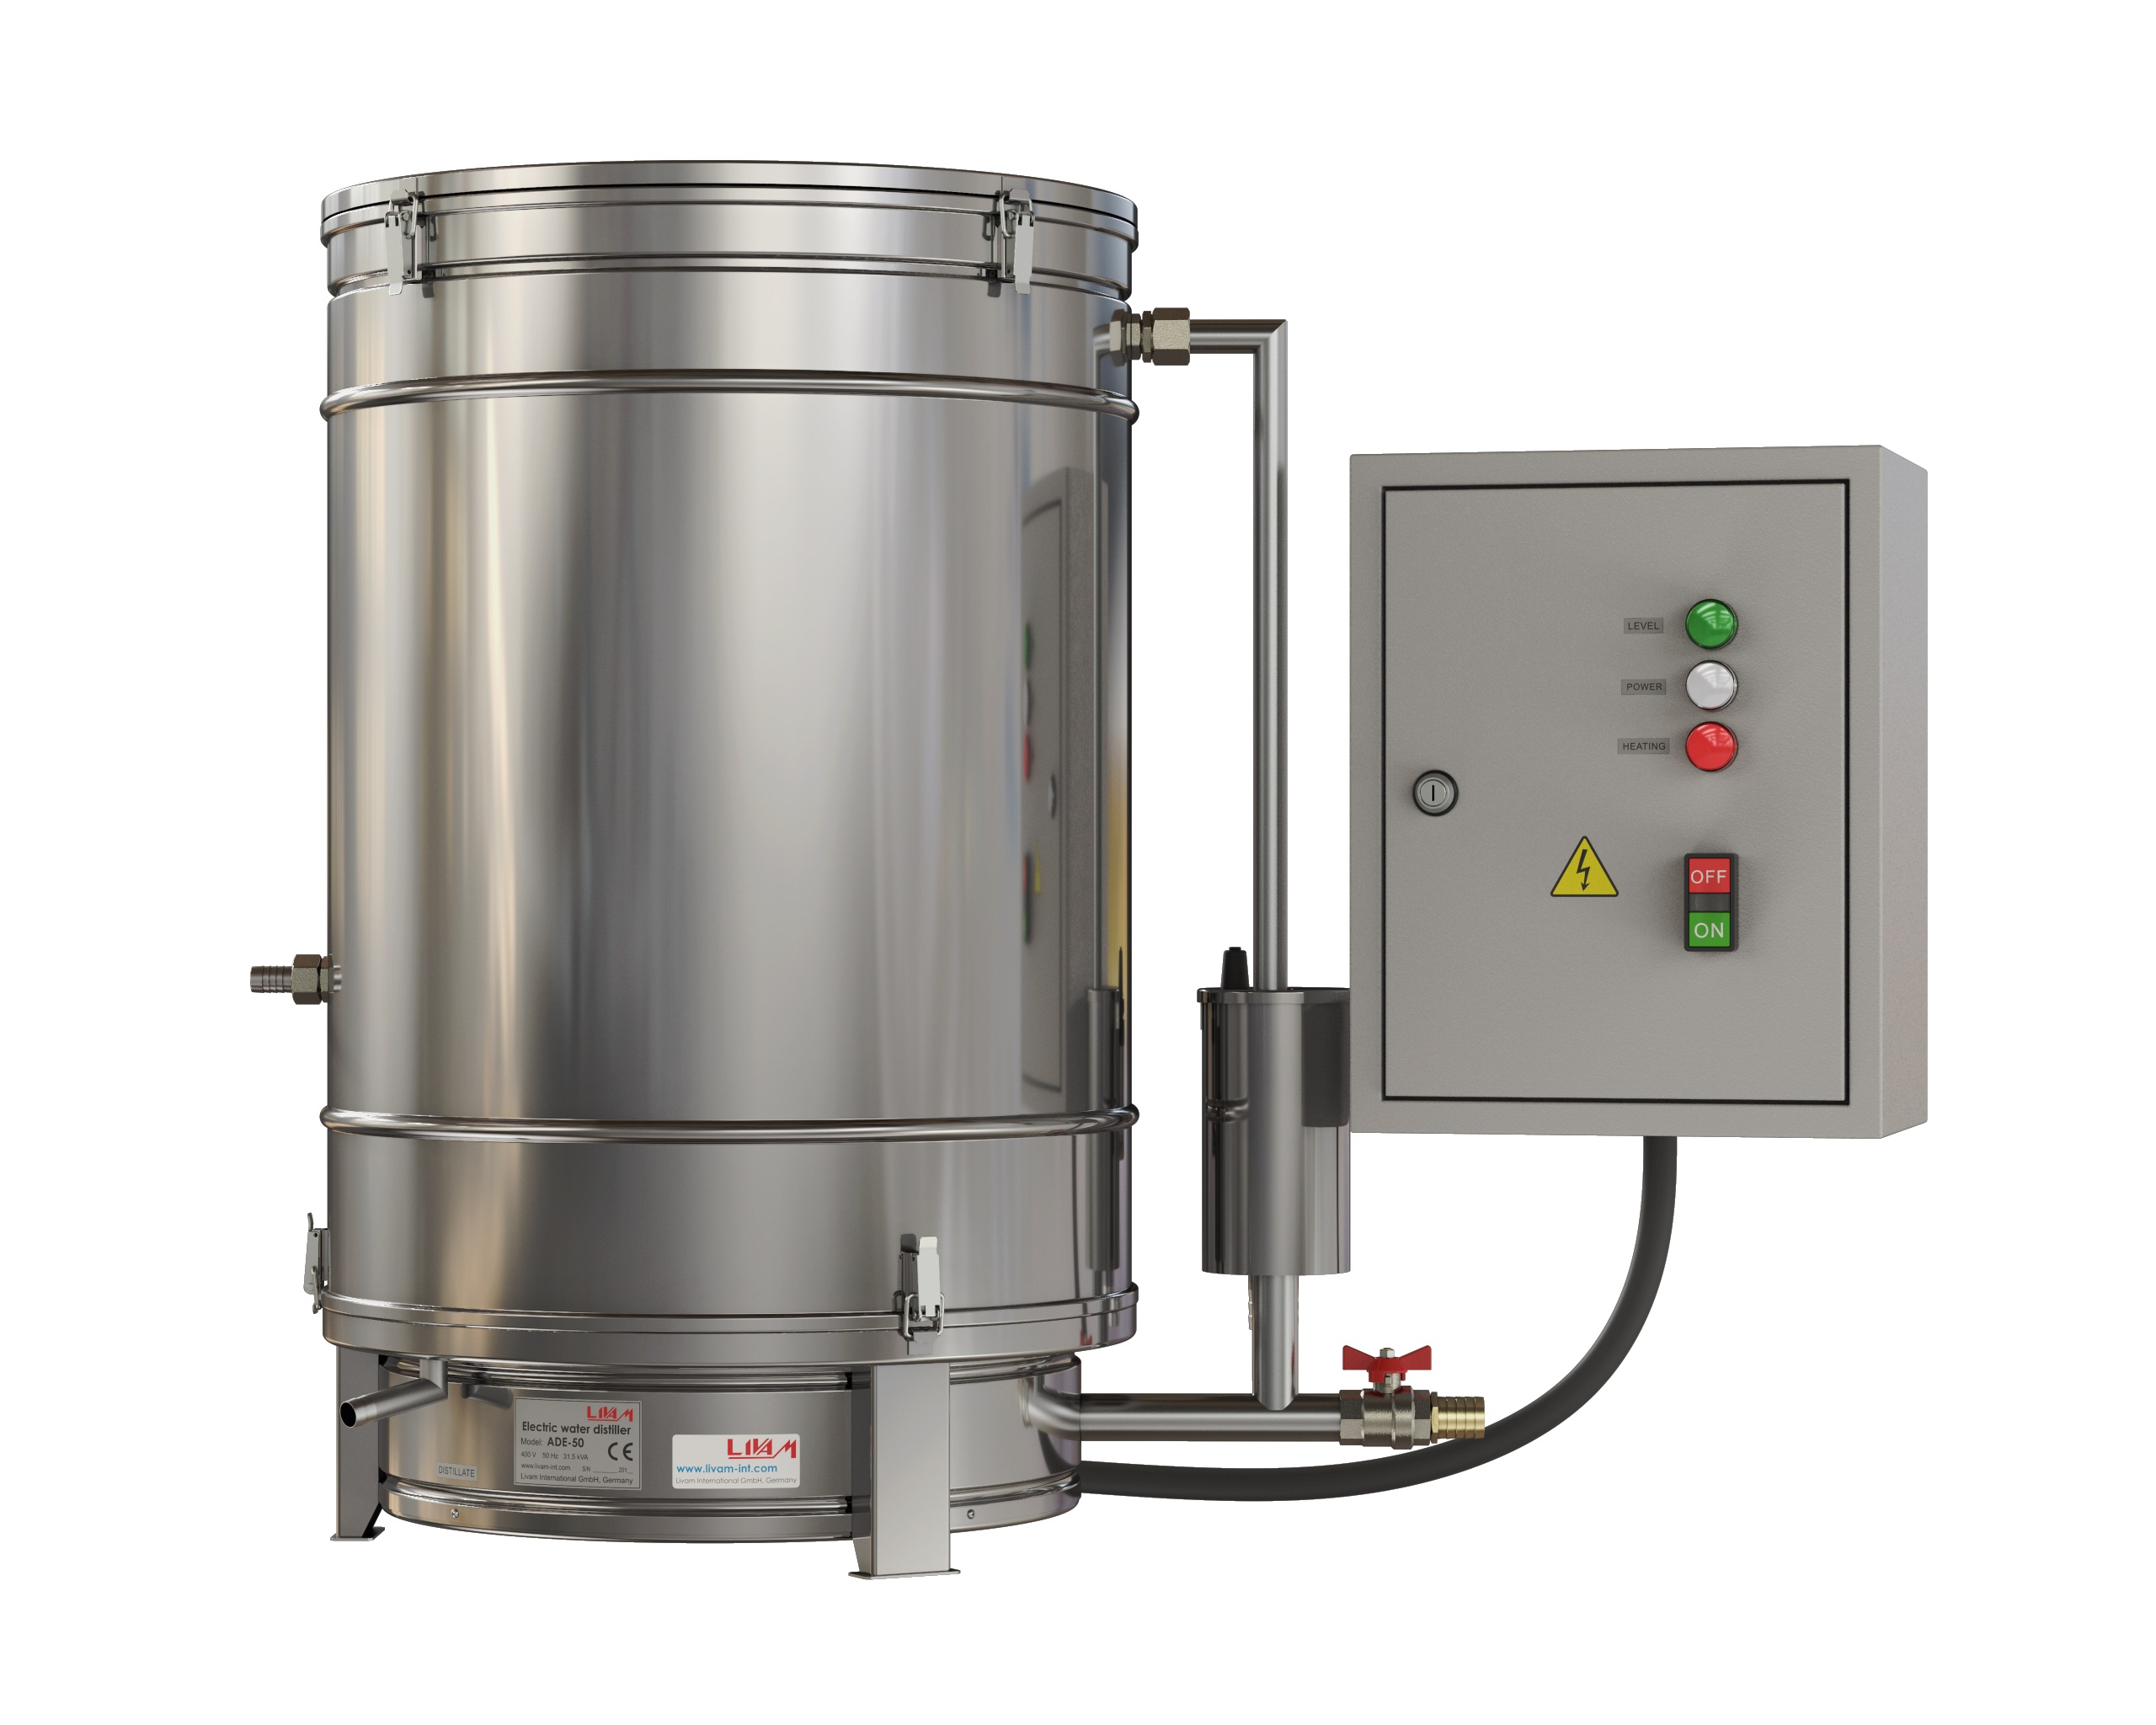 Livam ADE-50 water distiller